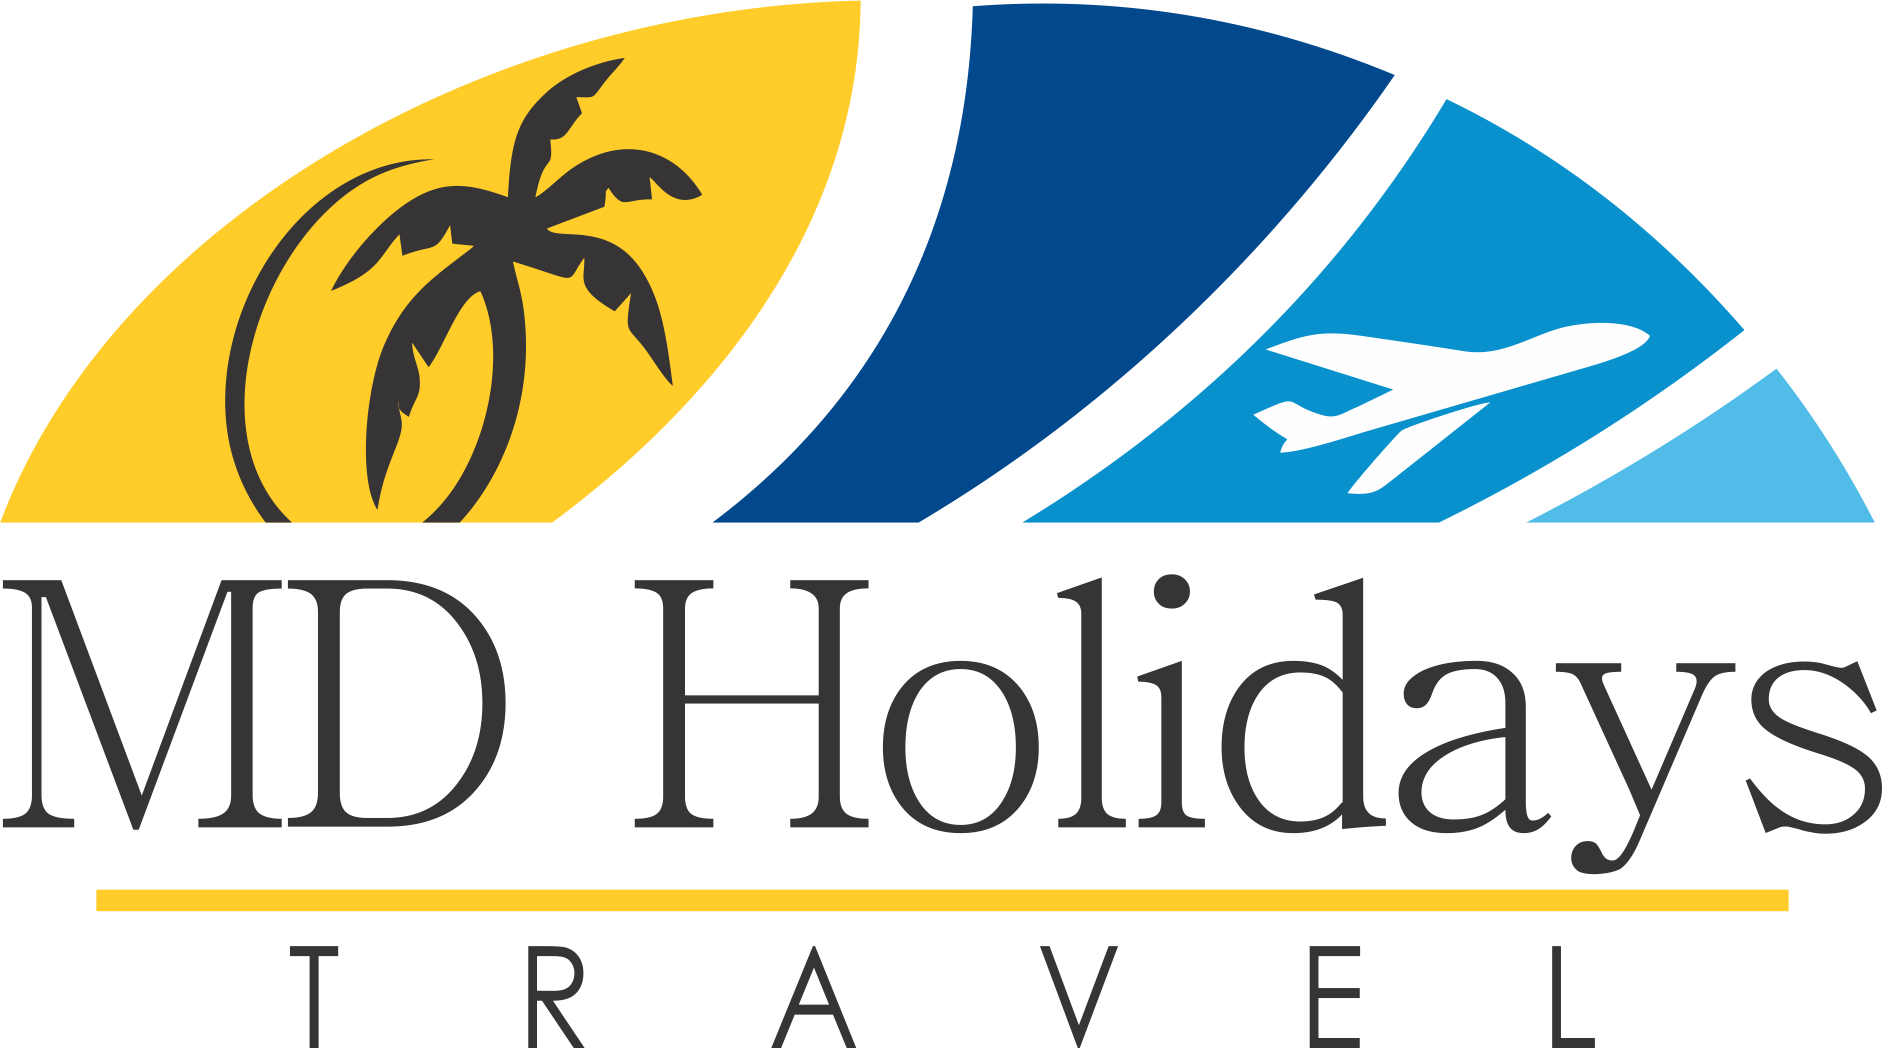 MD HOLIDAYS TRAVEL | Lisabona - MD HOLIDAYS TRAVEL